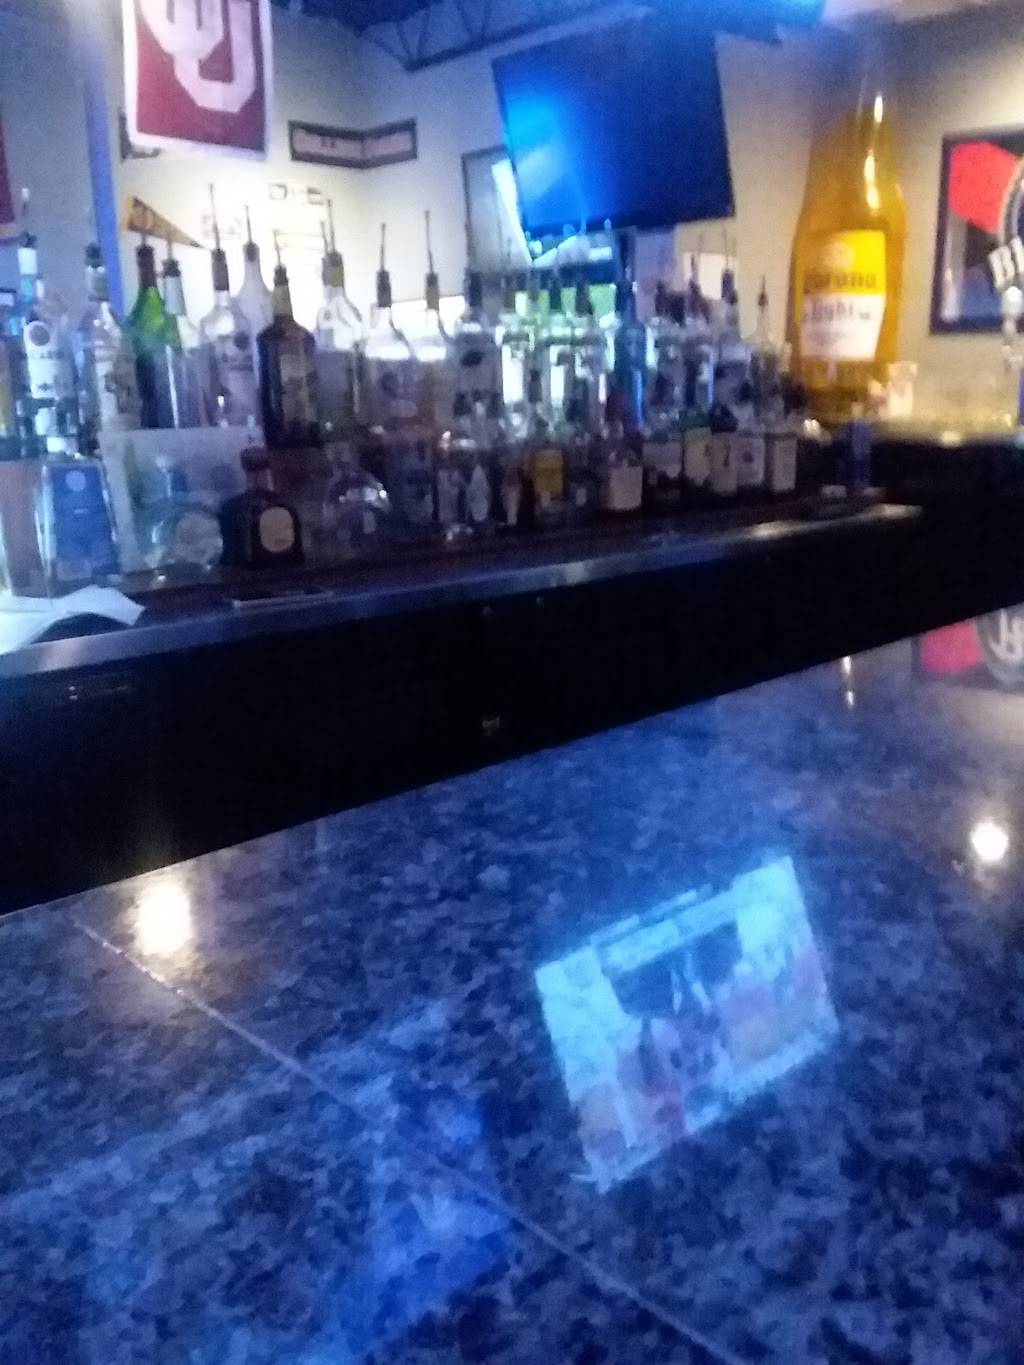 Hang Time Sports Grill & Bar   restaurant   9824 Lakeview Pkwy, Rowlett, TX 75088, USA   9724128463 OR +1 972-412-8463